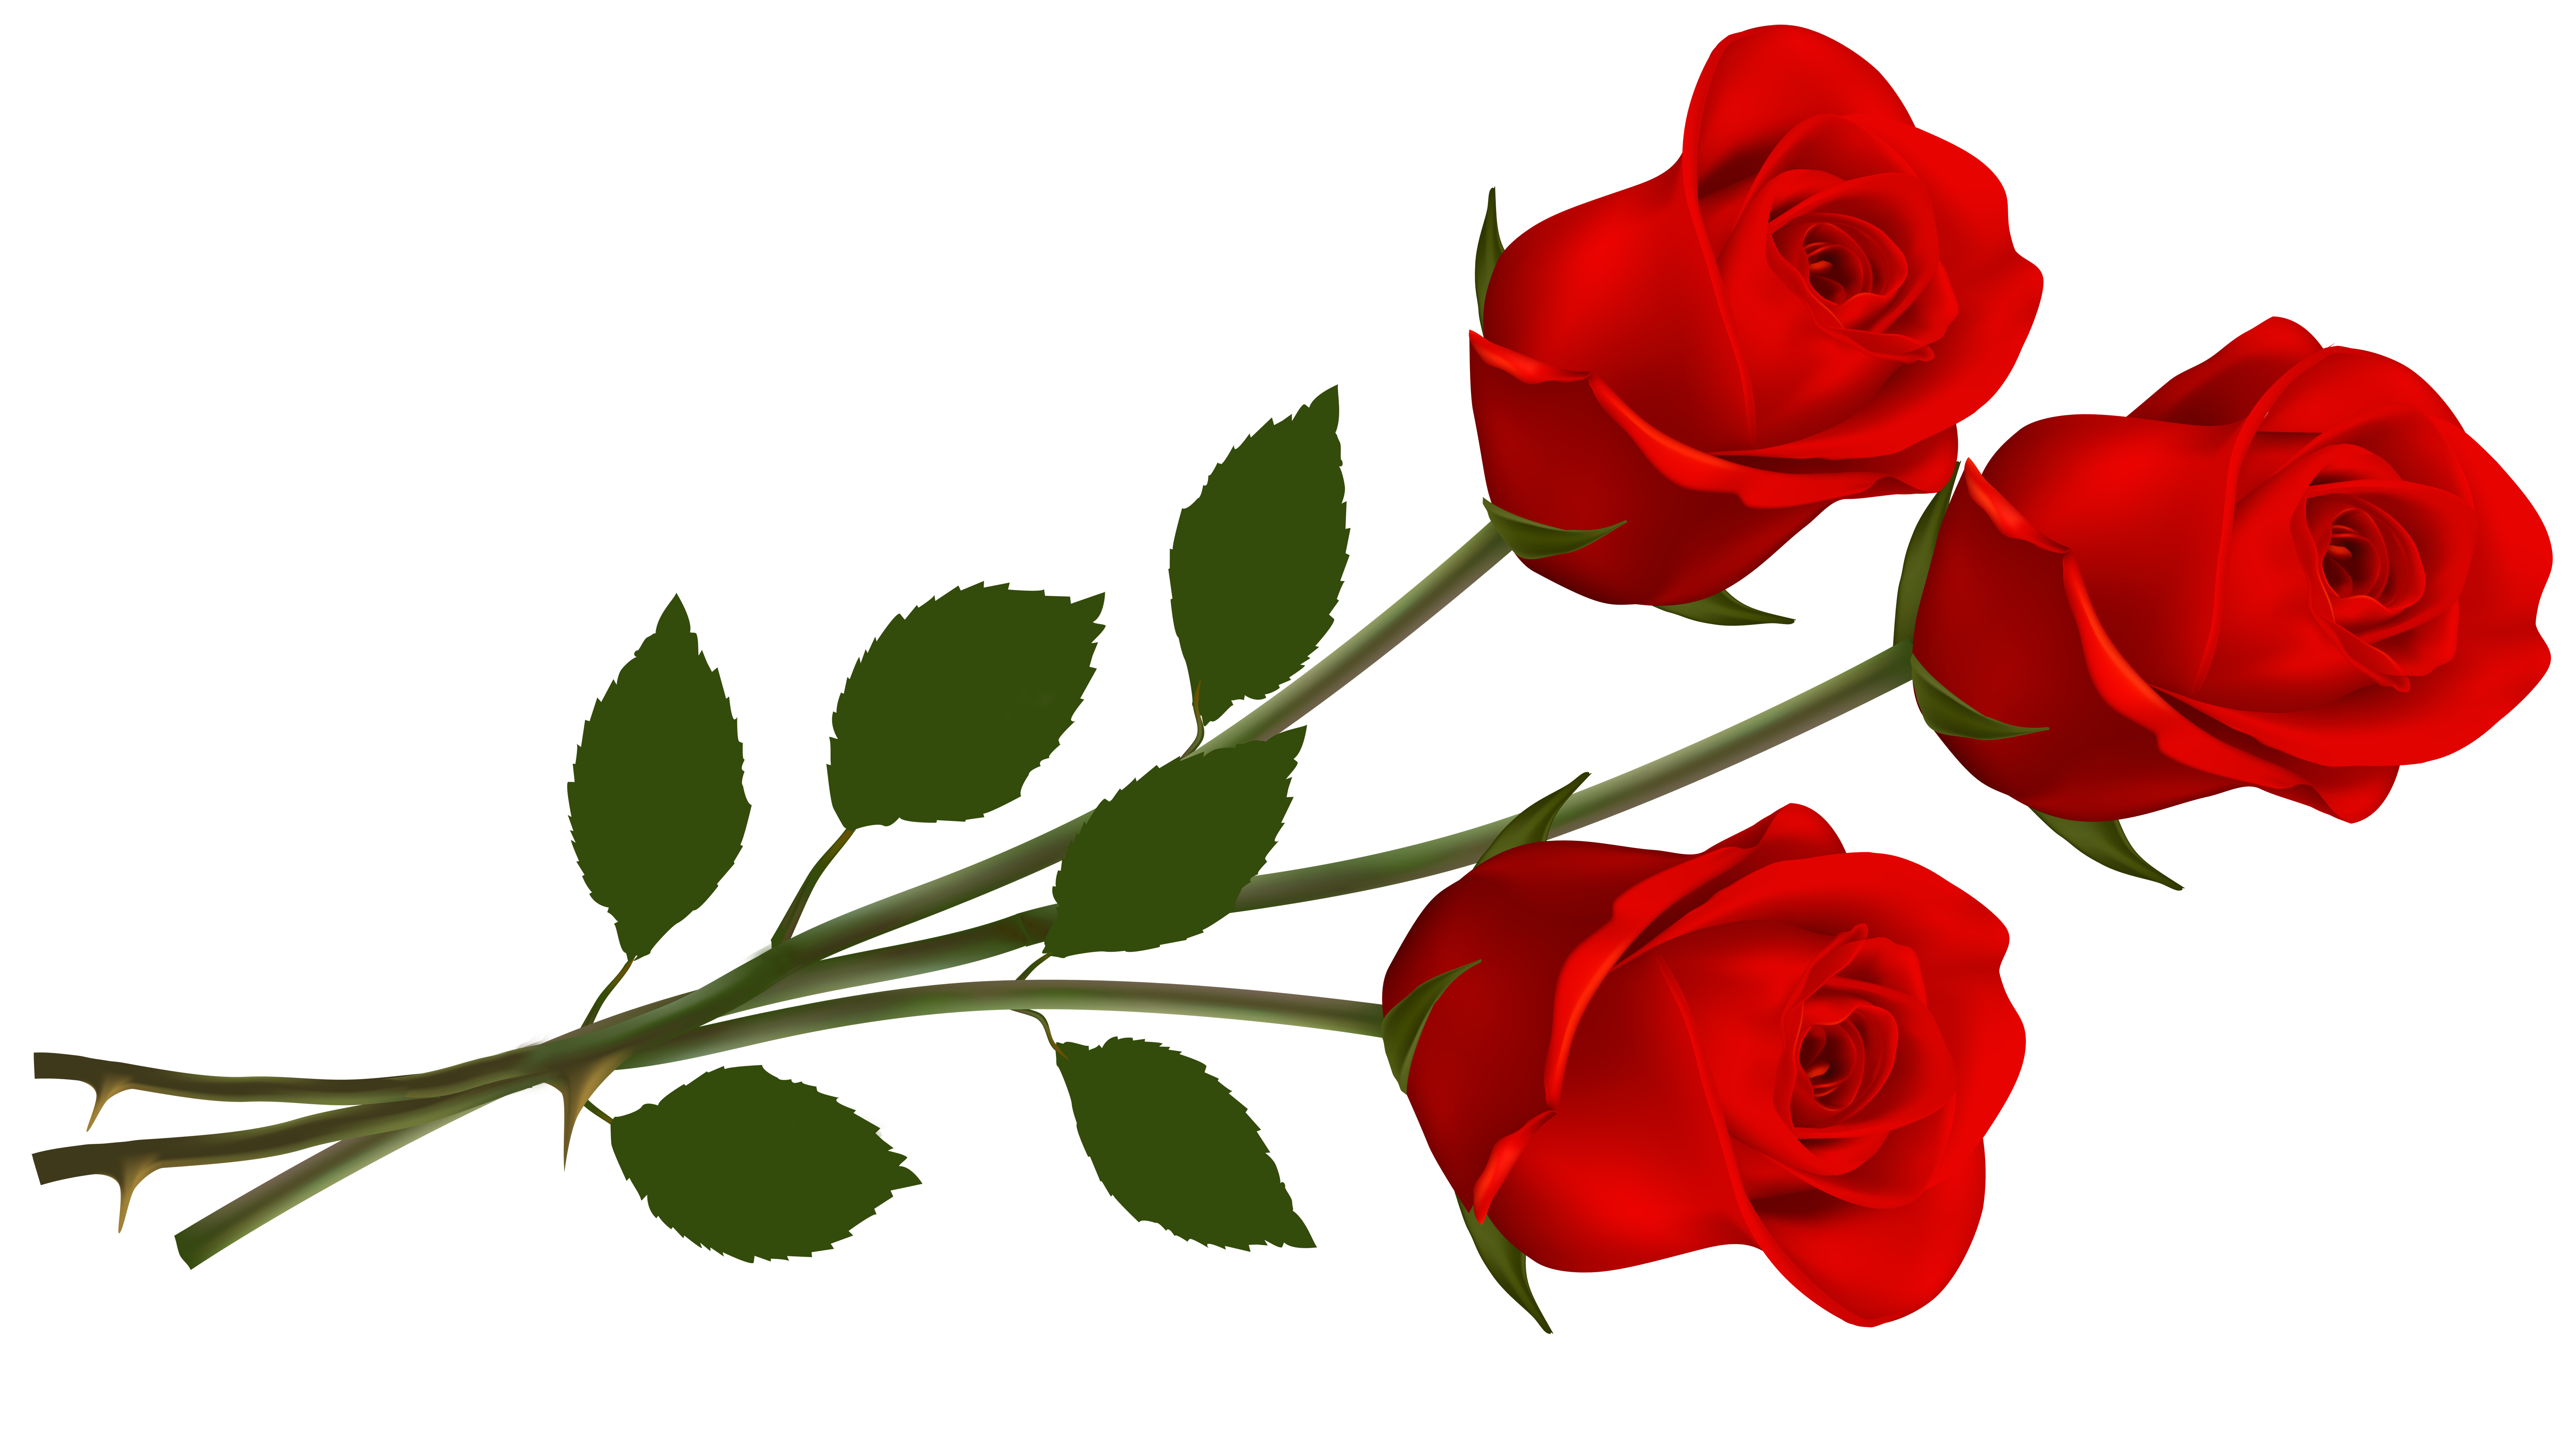 Large red roses png. 3 clipart rose picture library